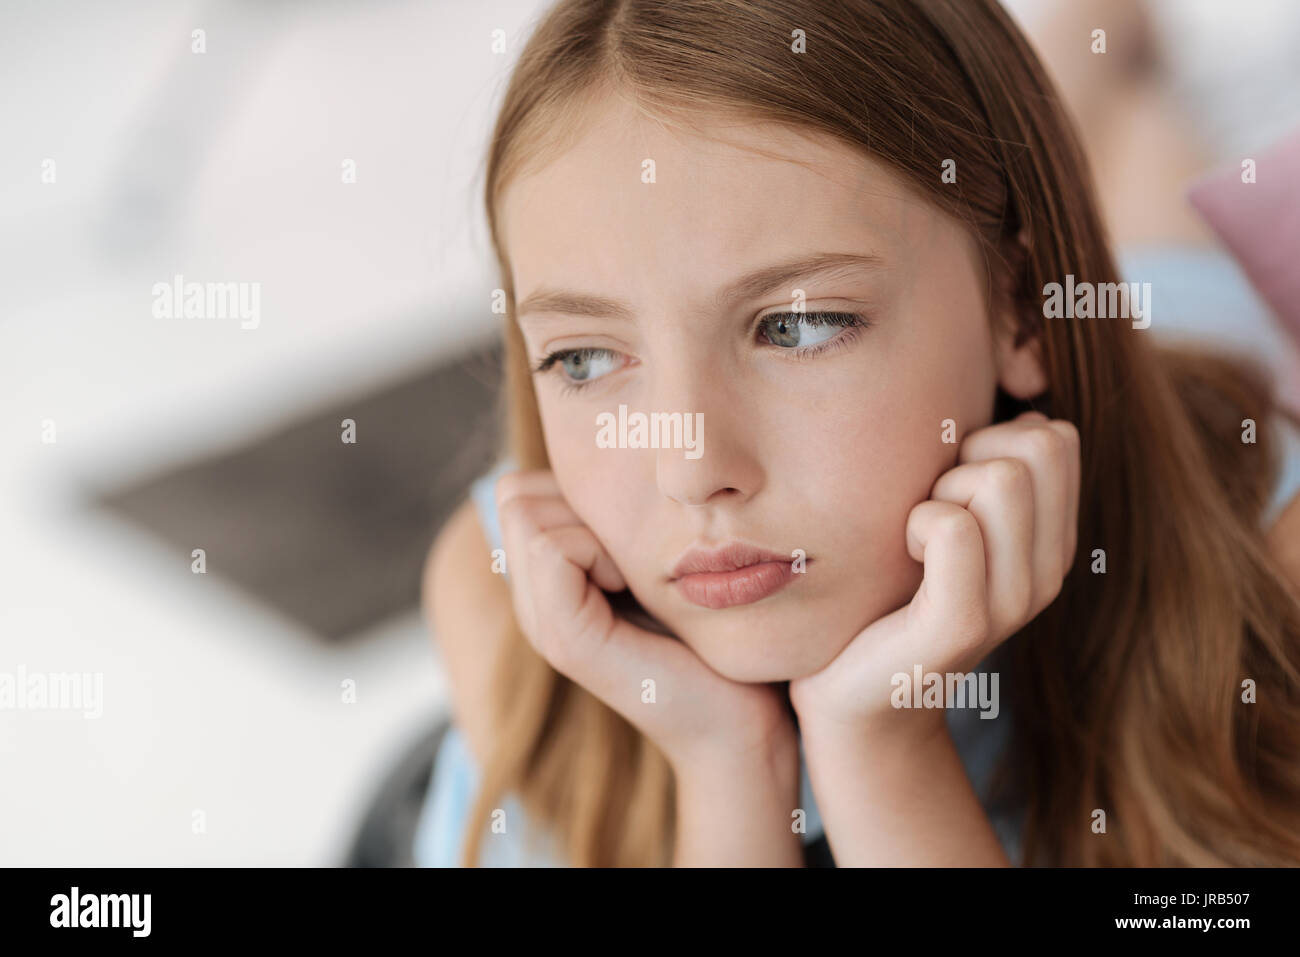 Upset female youngster looking into vacancy - Stock Image